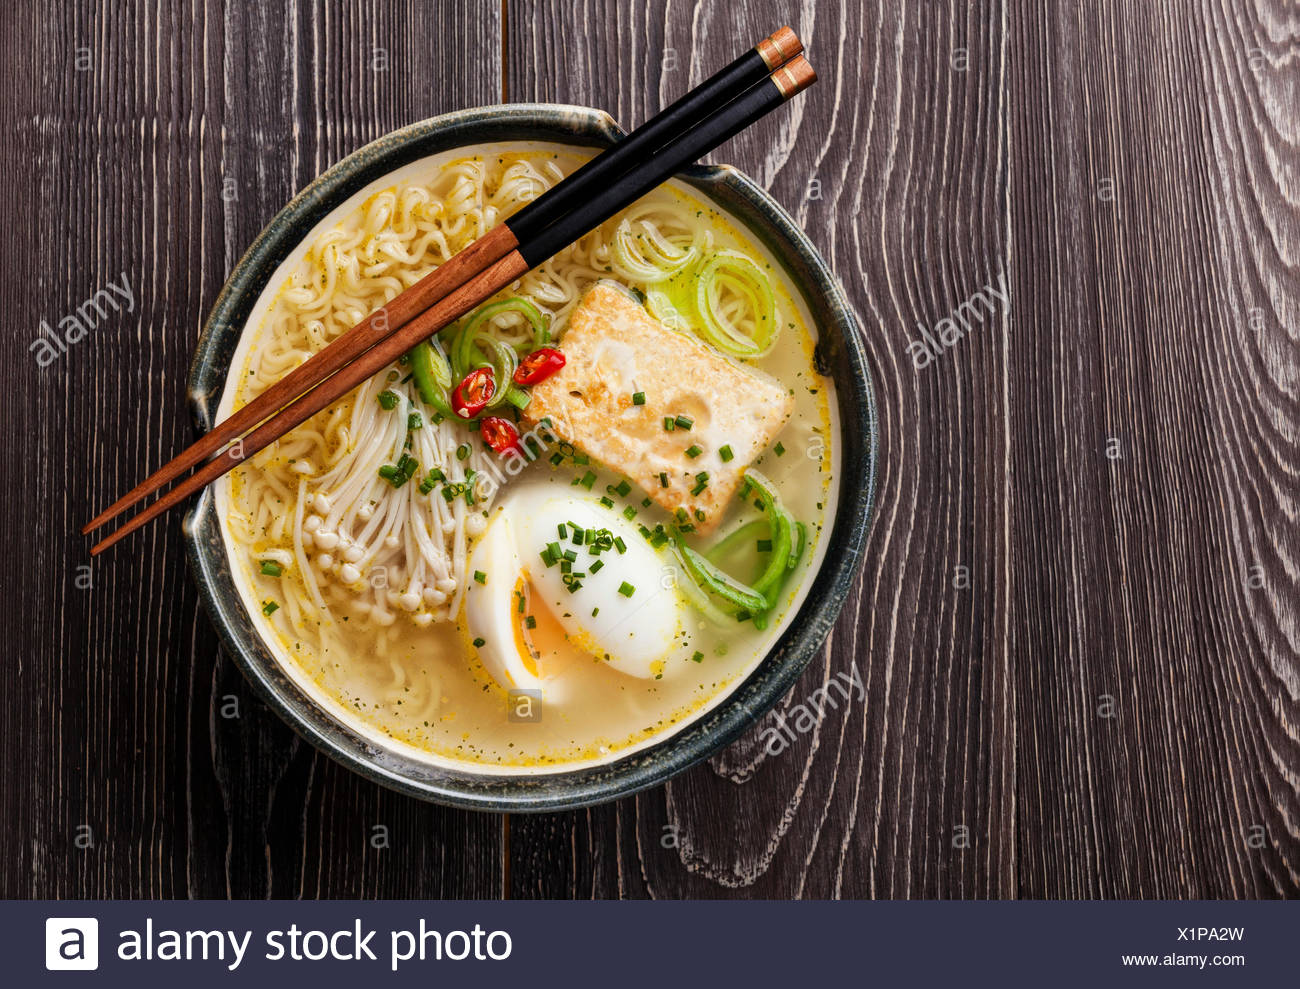 Asian Miso ramen noodles with egg, tofu and enoki in bowl on gray wooden background - Stock Image